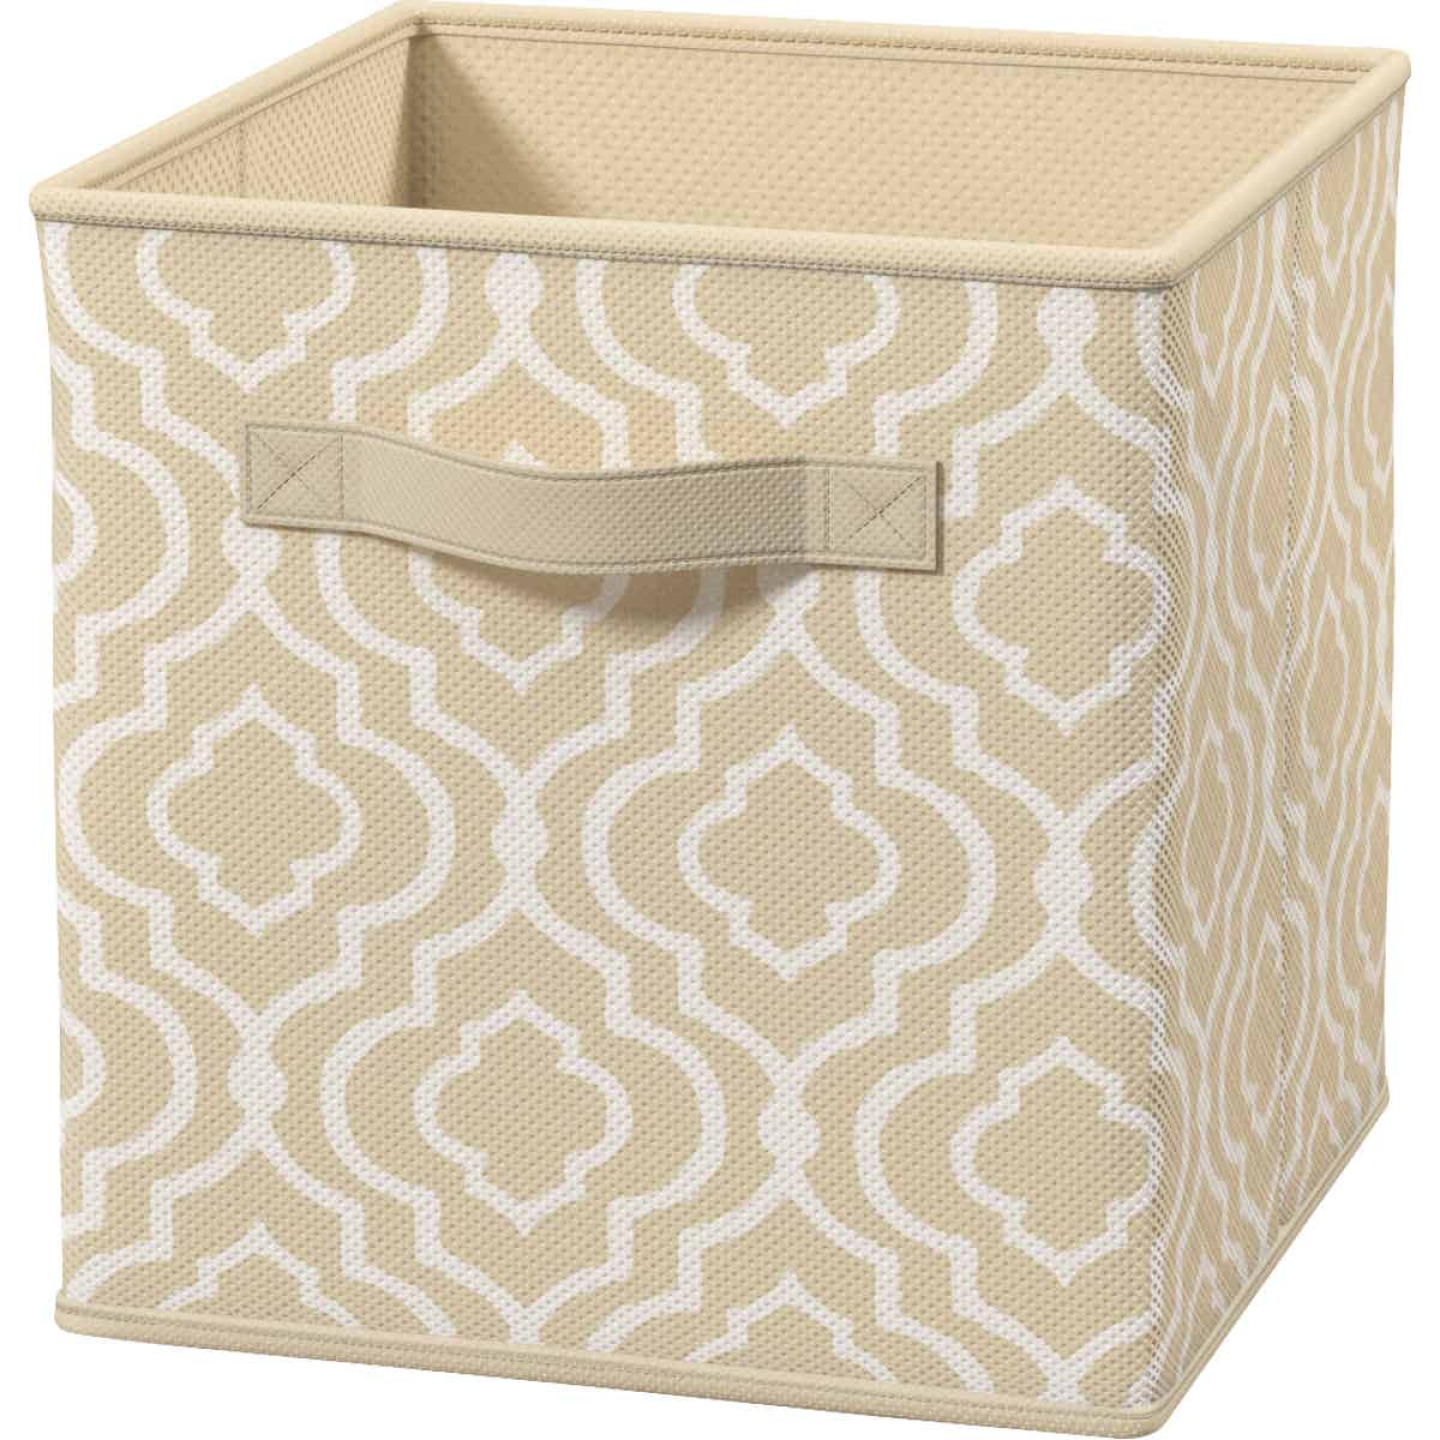 ClosetMaid Cubeicals 10.5 In. W. x 11 In. H. Beige Fabric Drawer Image 1